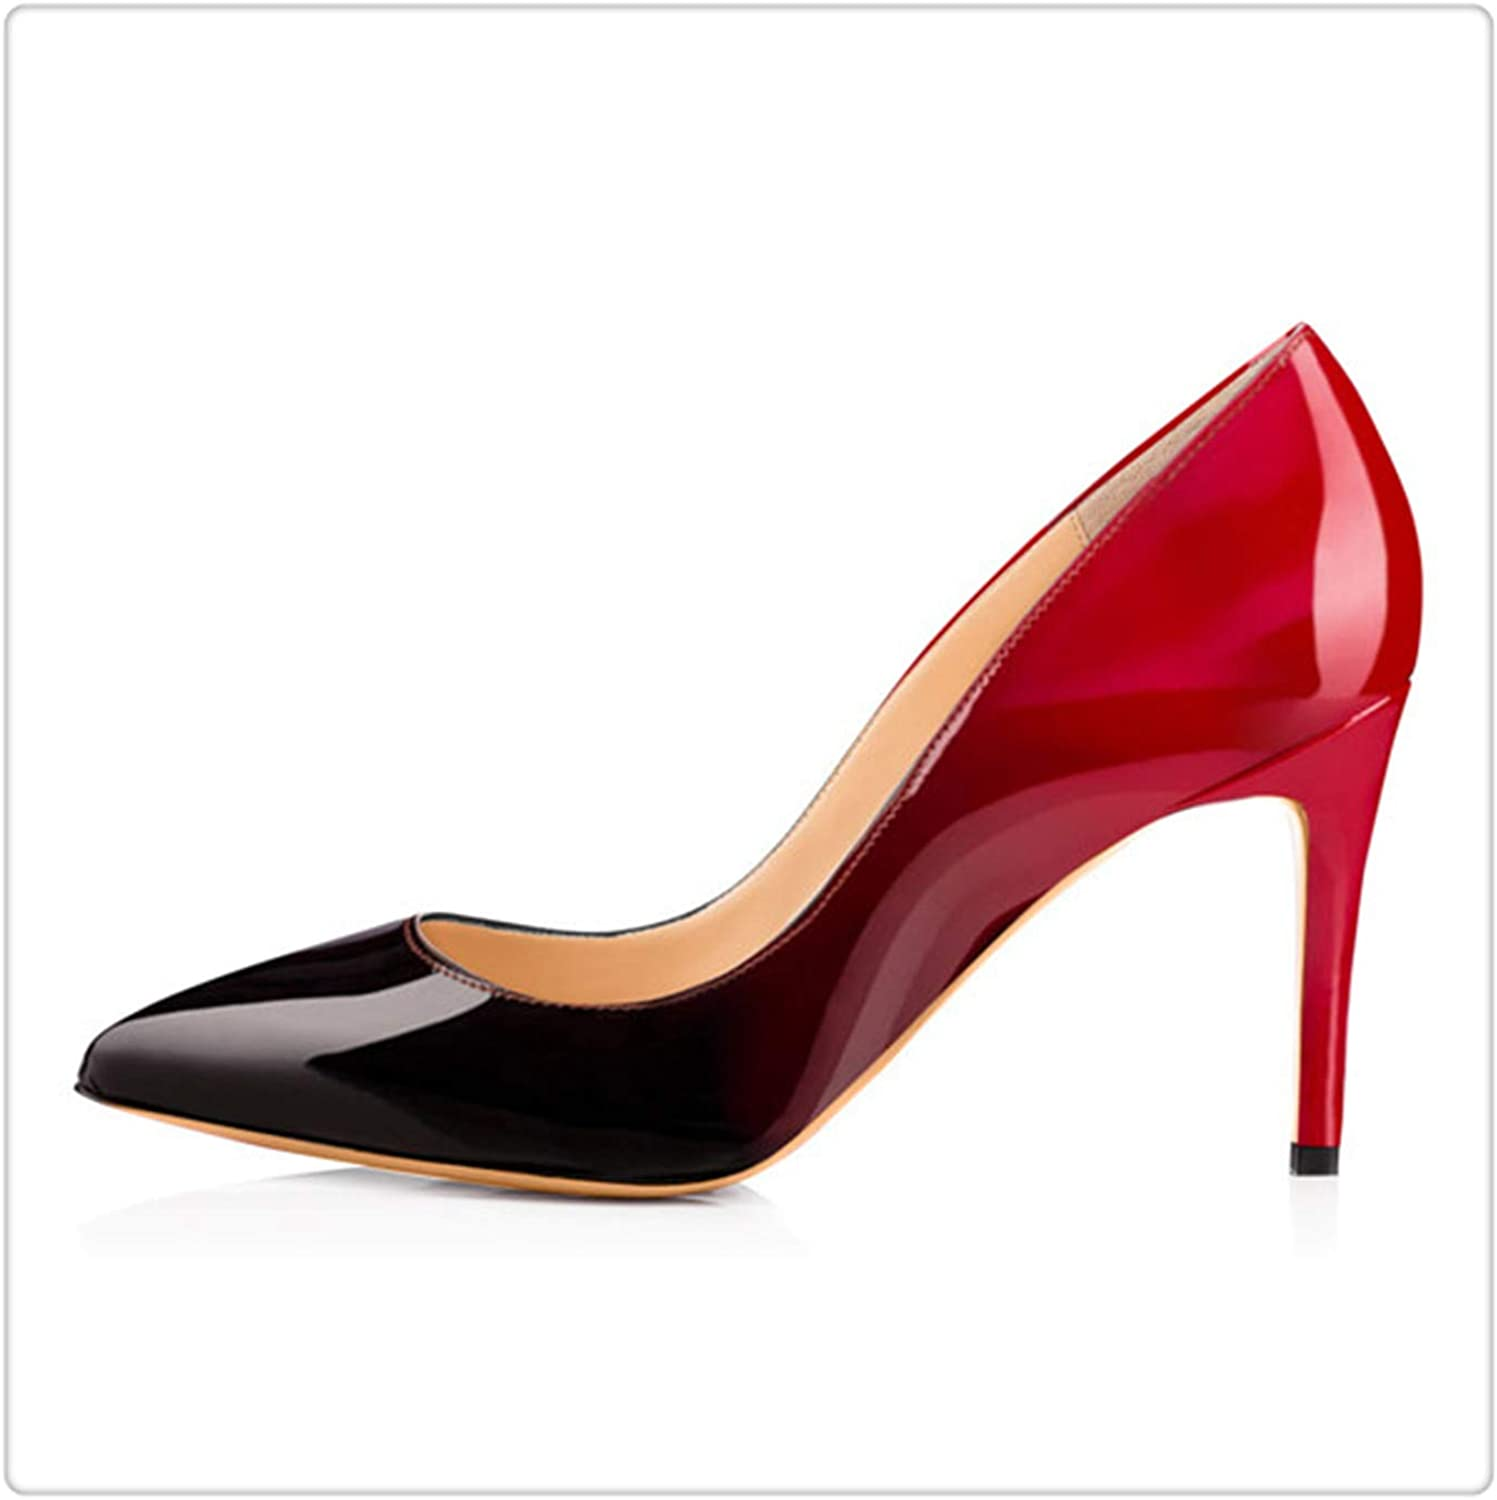 KKEPO& 3.5 Inches 8.5cm Thin High Heel Women's Pumps shoes Sexy Pointed Toe Wedding shoes Party Pumps Patent Leather shoes H170127 9